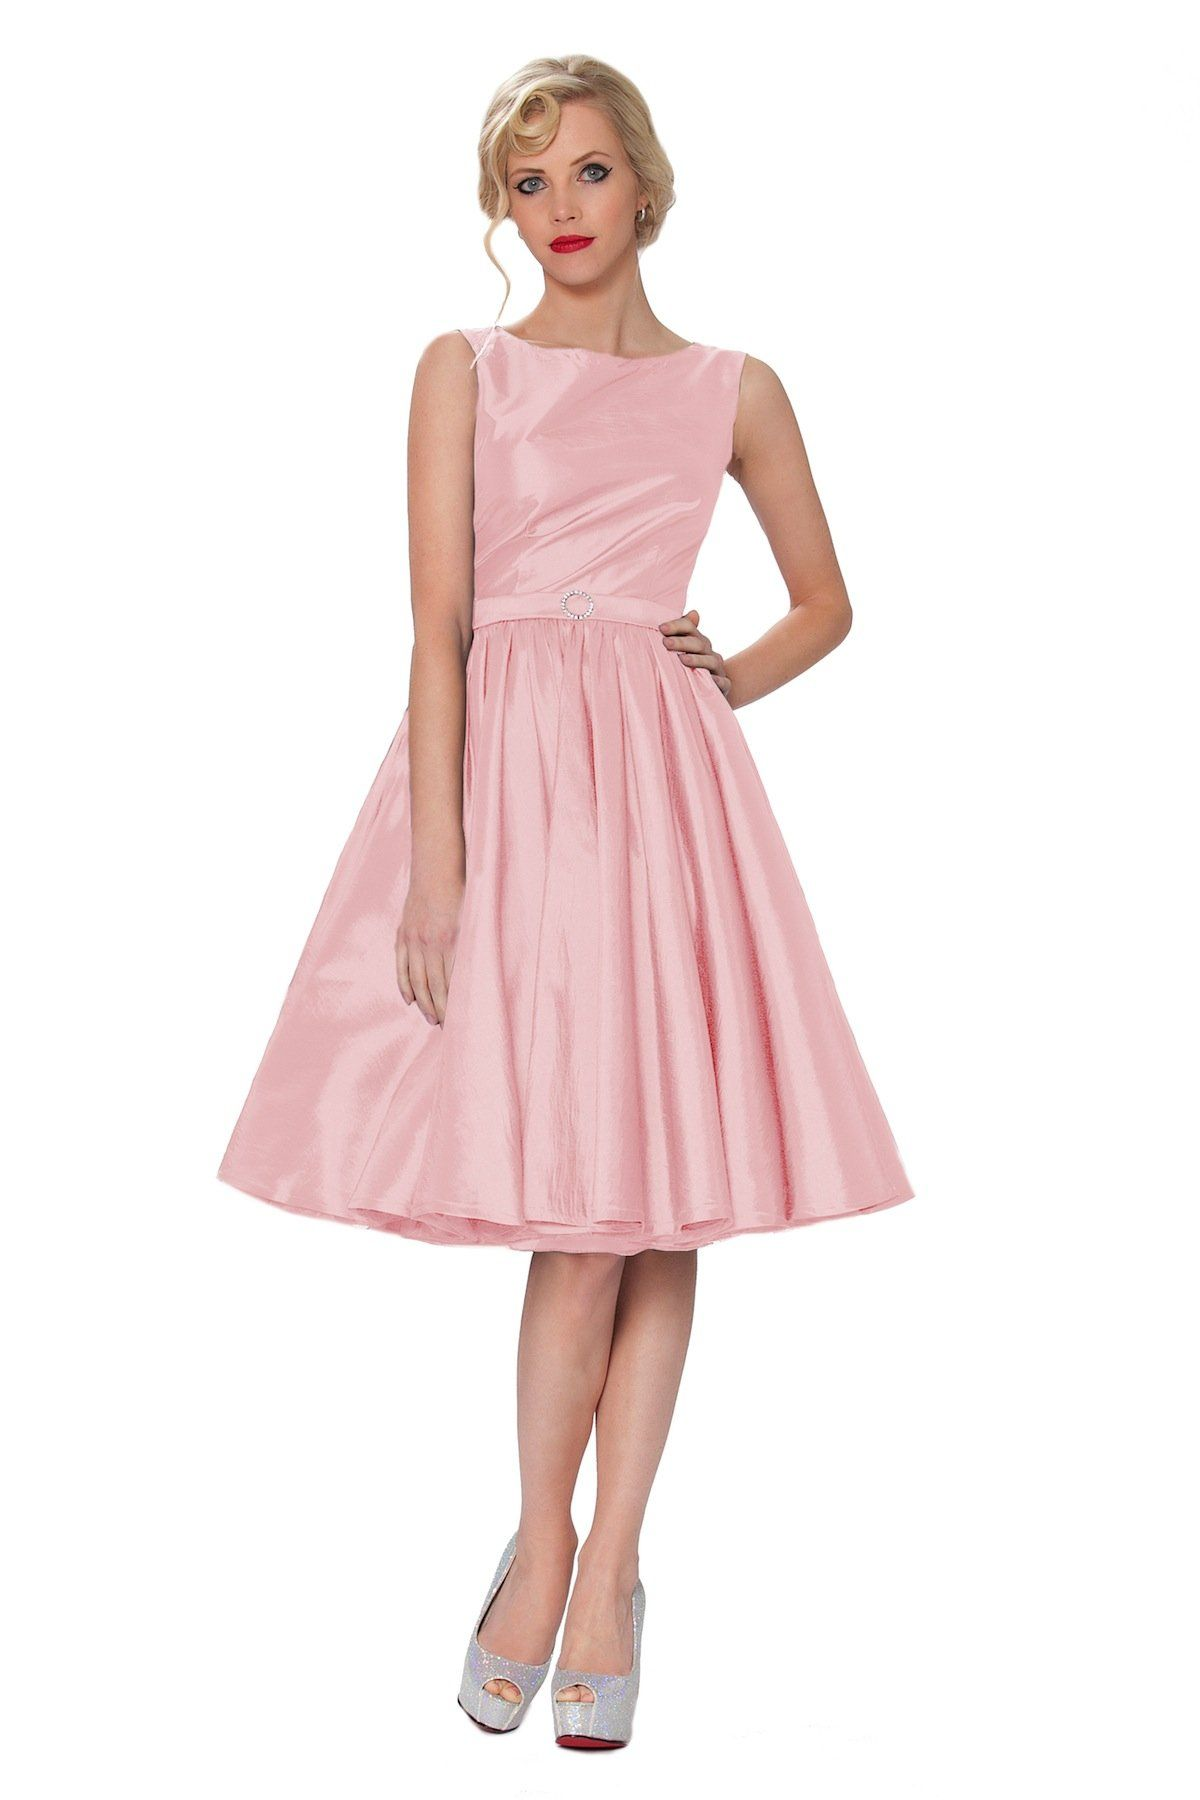 Sexyher audrey hepburn style 1950s rockabilly swing dress sexyher audrey hepburn style 1950s rockabilly swing dress rbj1401lightpink 48tus16 ombrellifo Image collections